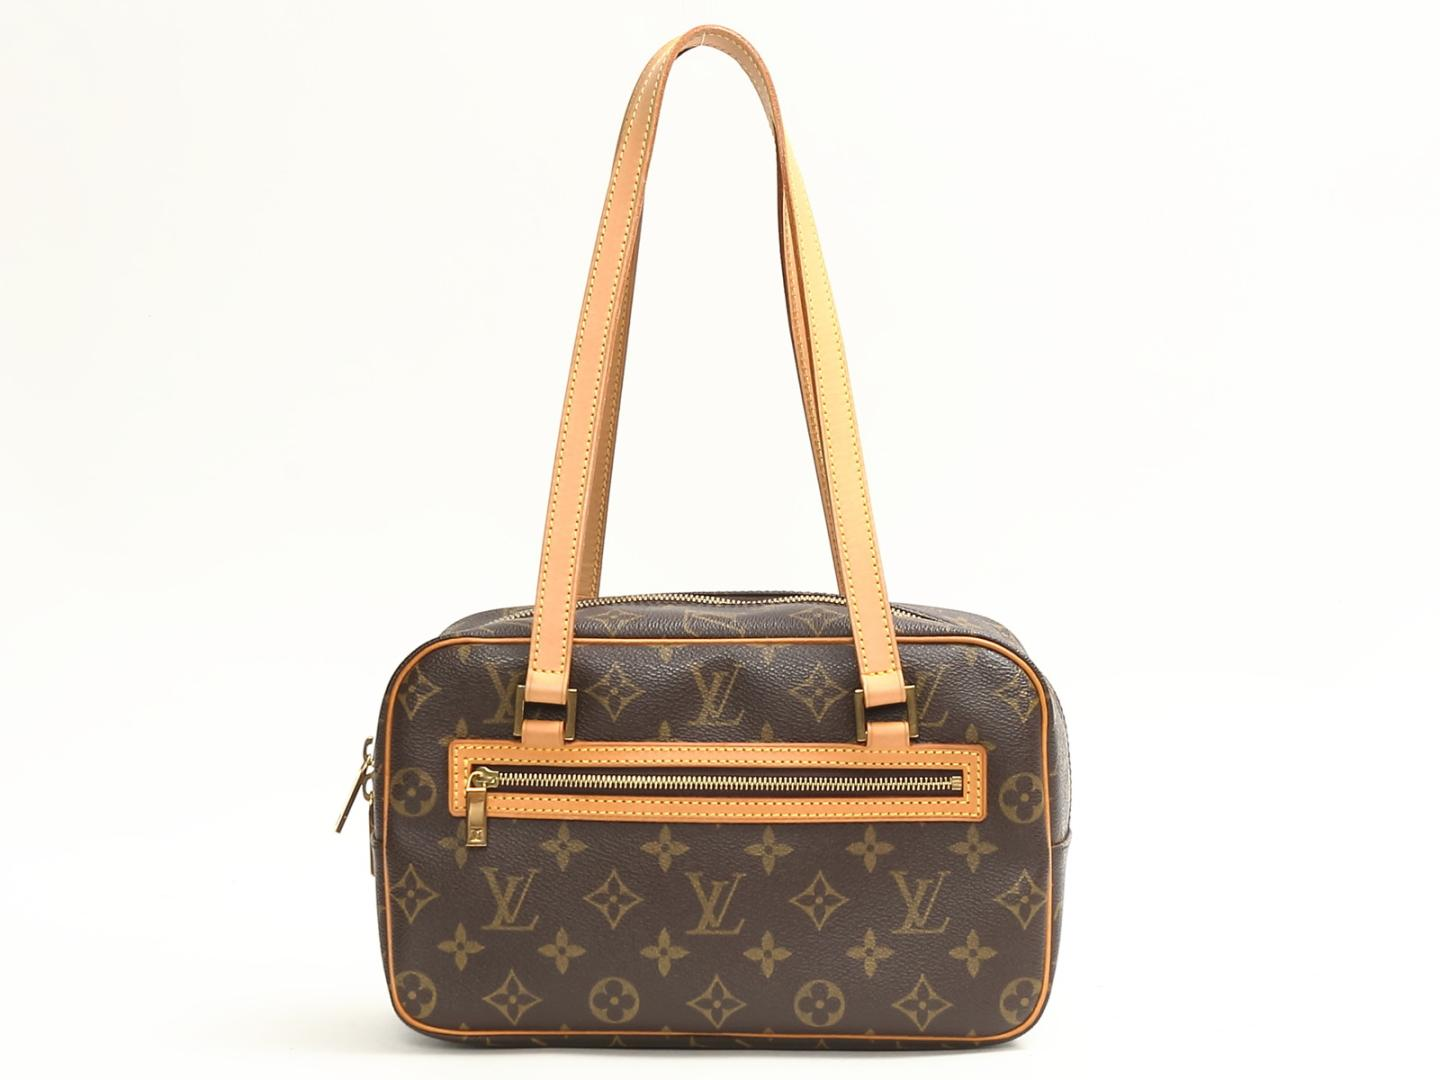 cec3993769bc BRANDOFF  Authentic LOUIS VUITTON Cite GM Shoulder Bag monogram ...